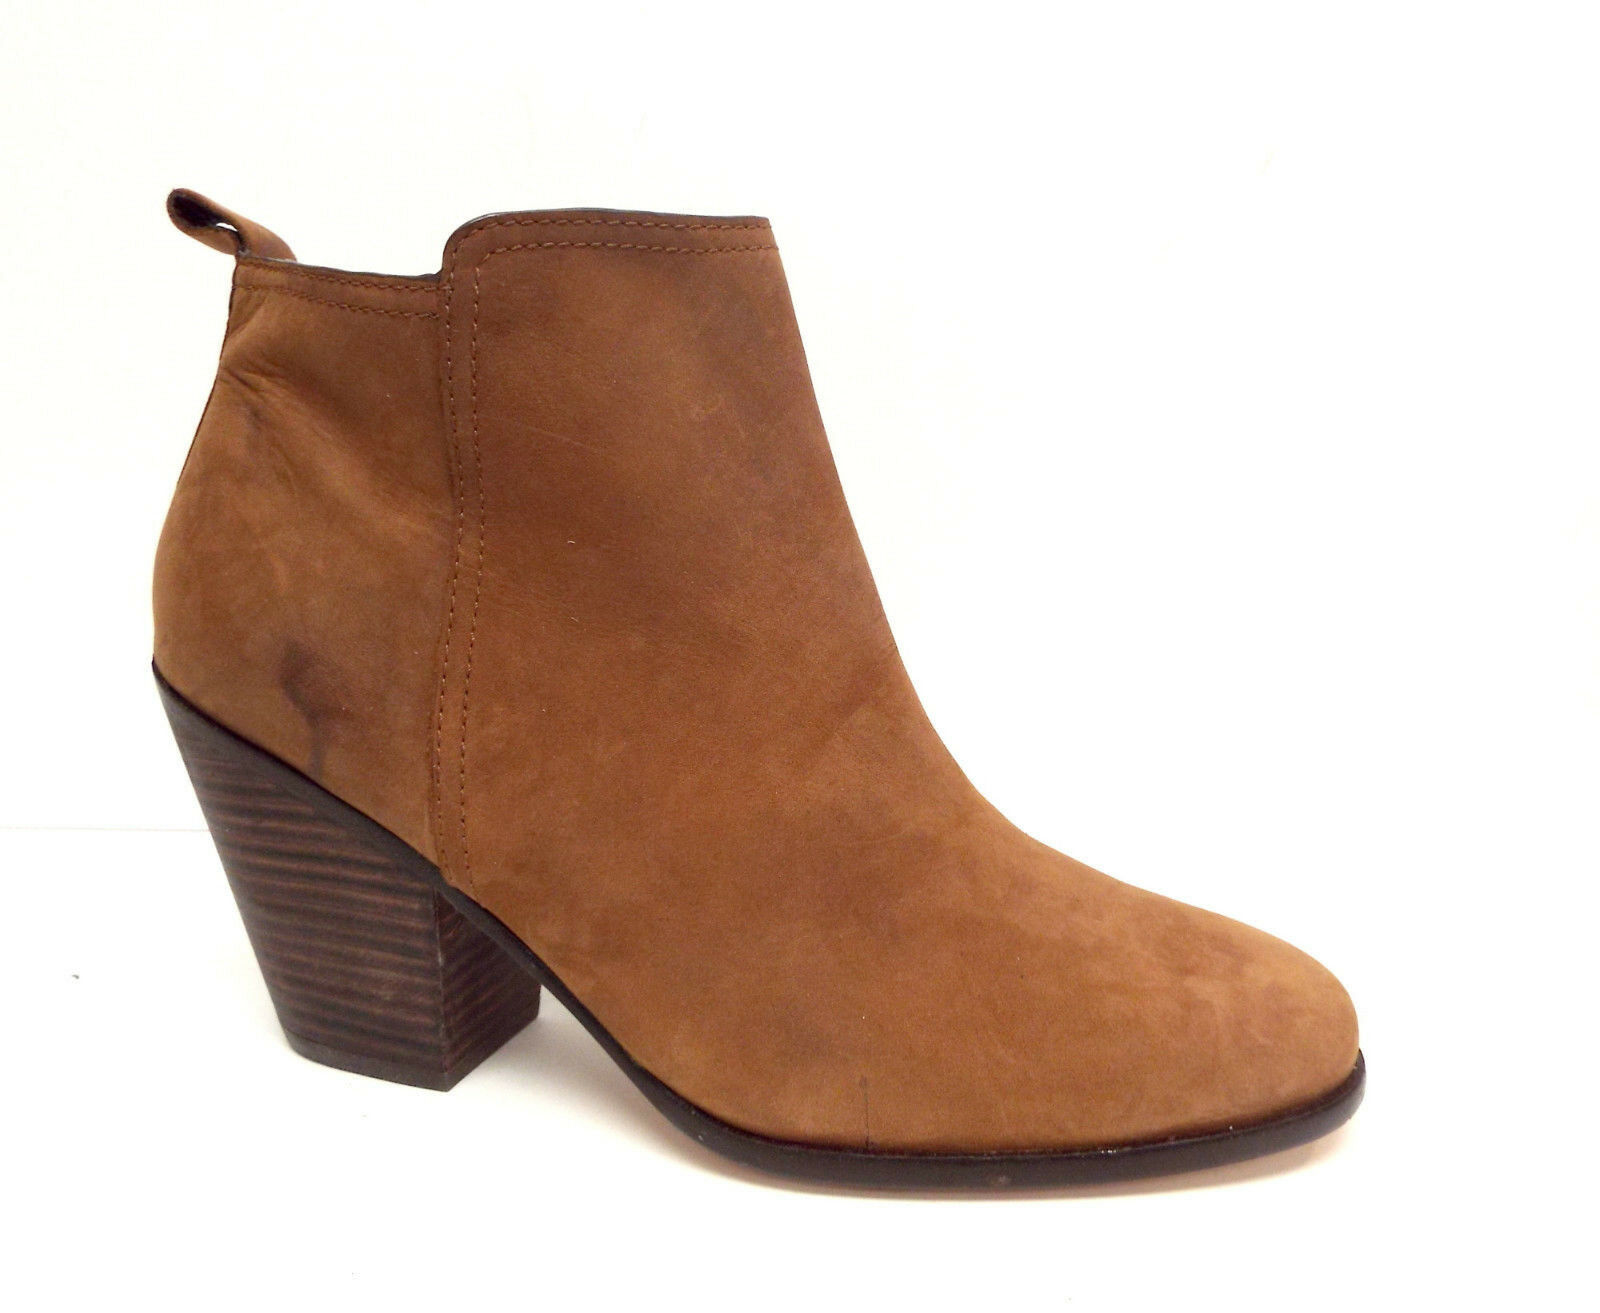 New COLE HAAN Size 11 CHESNEY Chestnut Brown Ankle Boots